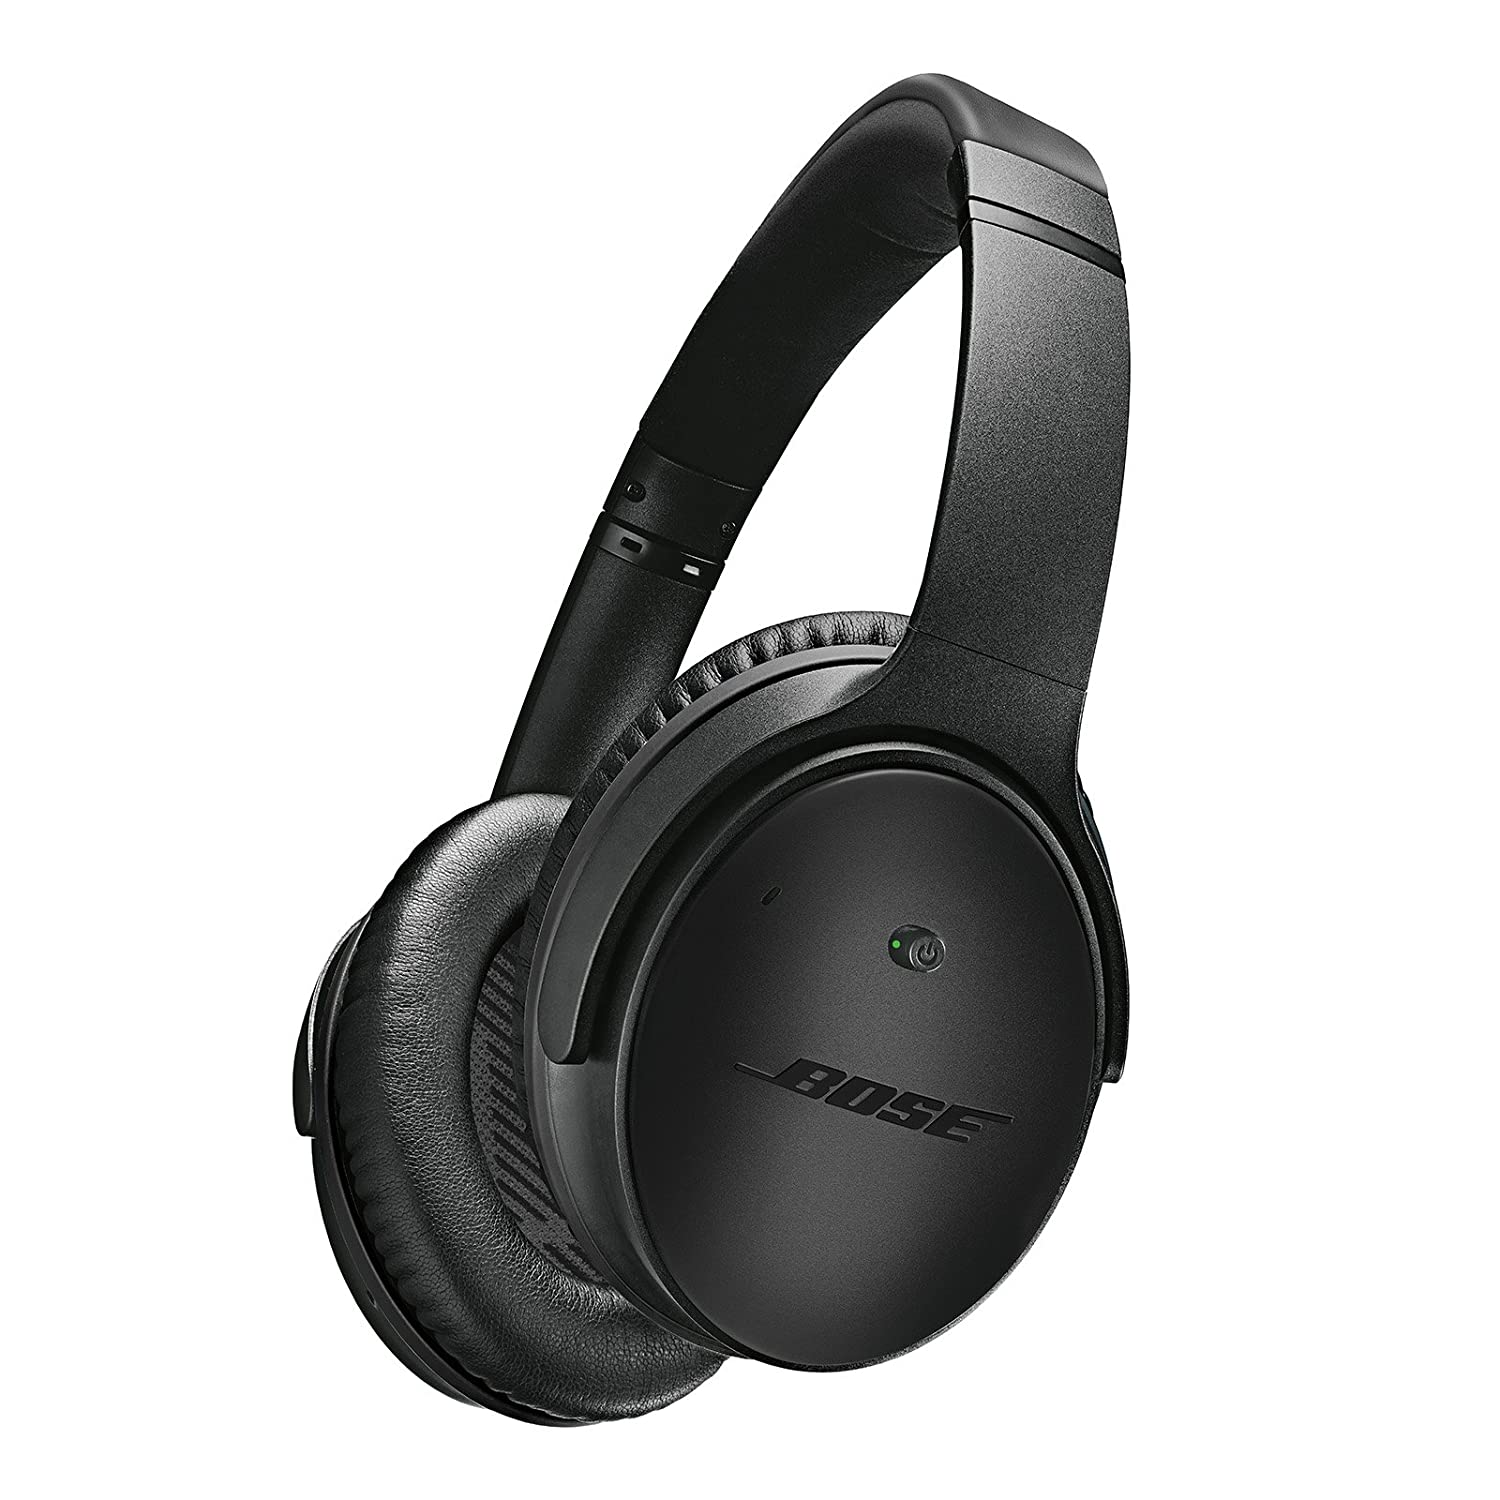 282f4cb9d04 Amazon.com: Bose QuietComfort 25 Acoustic Noise Cancelling Headphones for  Apple Devices, Triple Black (wired, 3.5mm): Home Audio & Theater